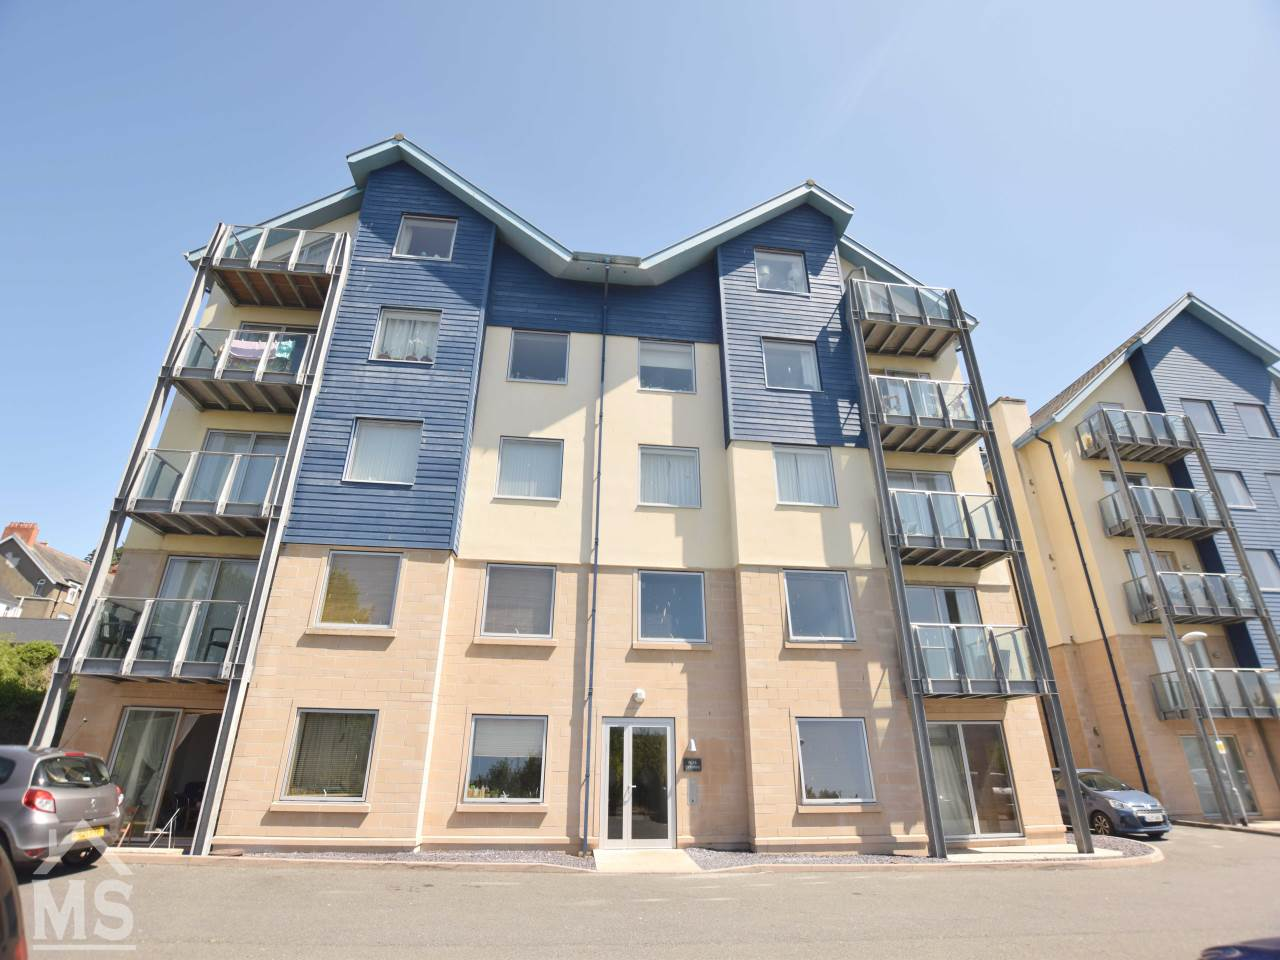 3 bed penthouse for sale in Parc Y Bryn, Aberystwyth, SY23